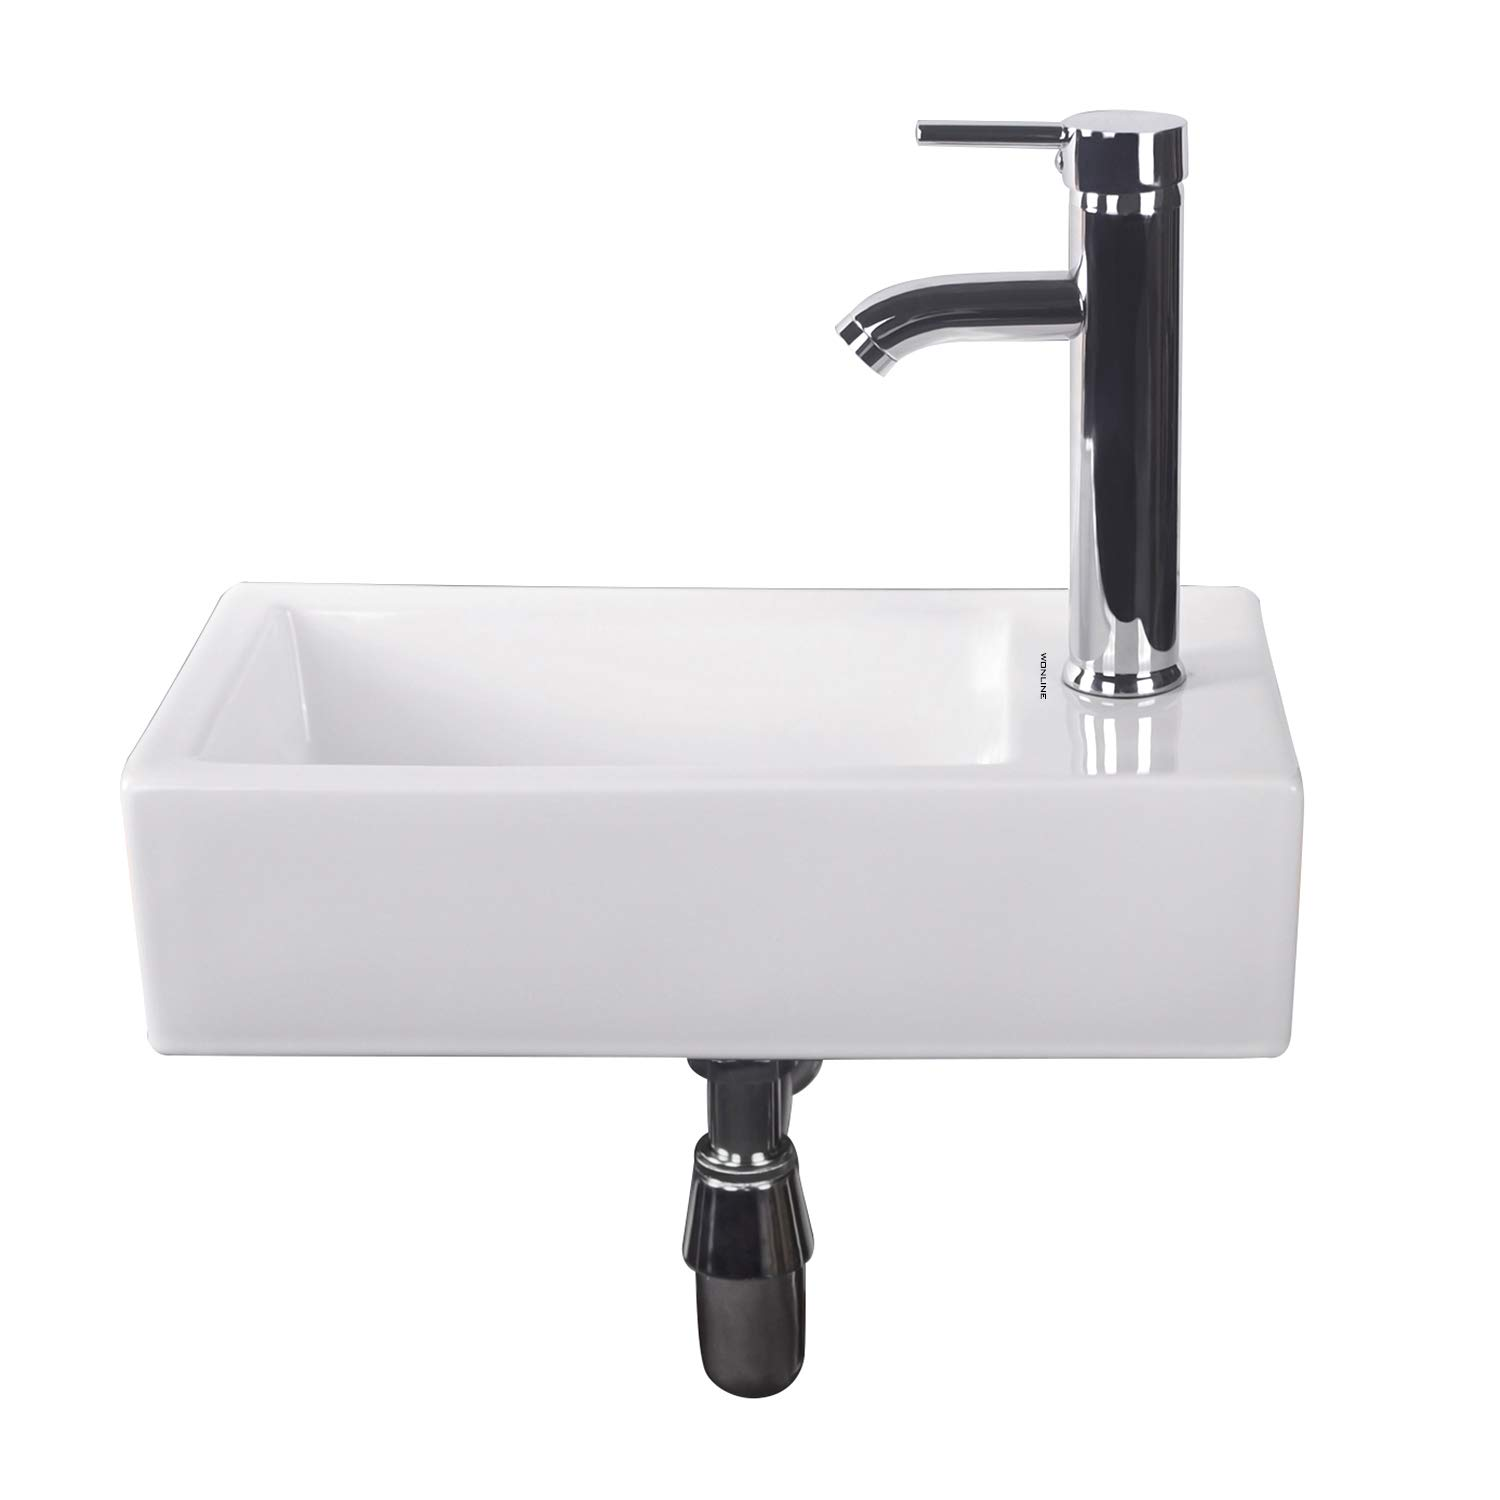 Walcut Bathroom Wall Mount Rectangle Corner Sink White Porcelain Ceramic Vessel Sink Chrome Faucet Combo